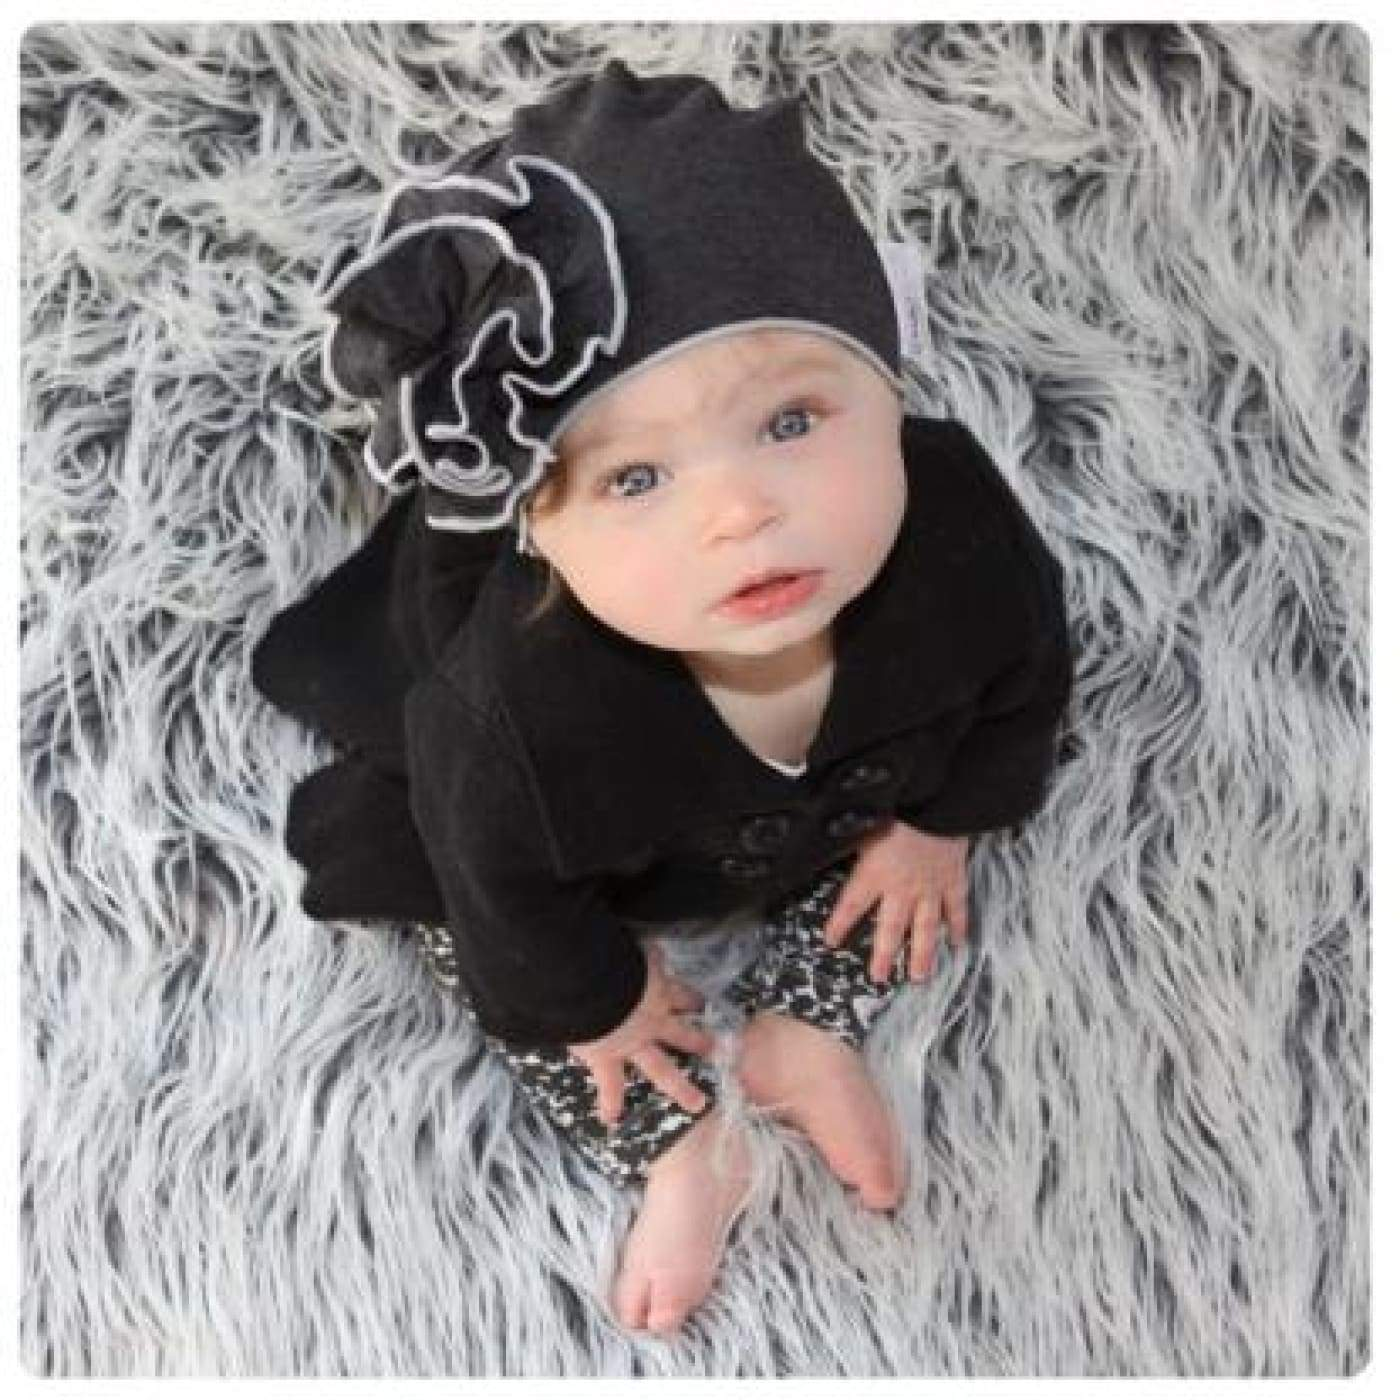 Mod Swad Bamboo Flower Beanie - Rockstar - Large - Large / Rockstar - BABY & TODDLER CLOTHING - BEANIES/HATS